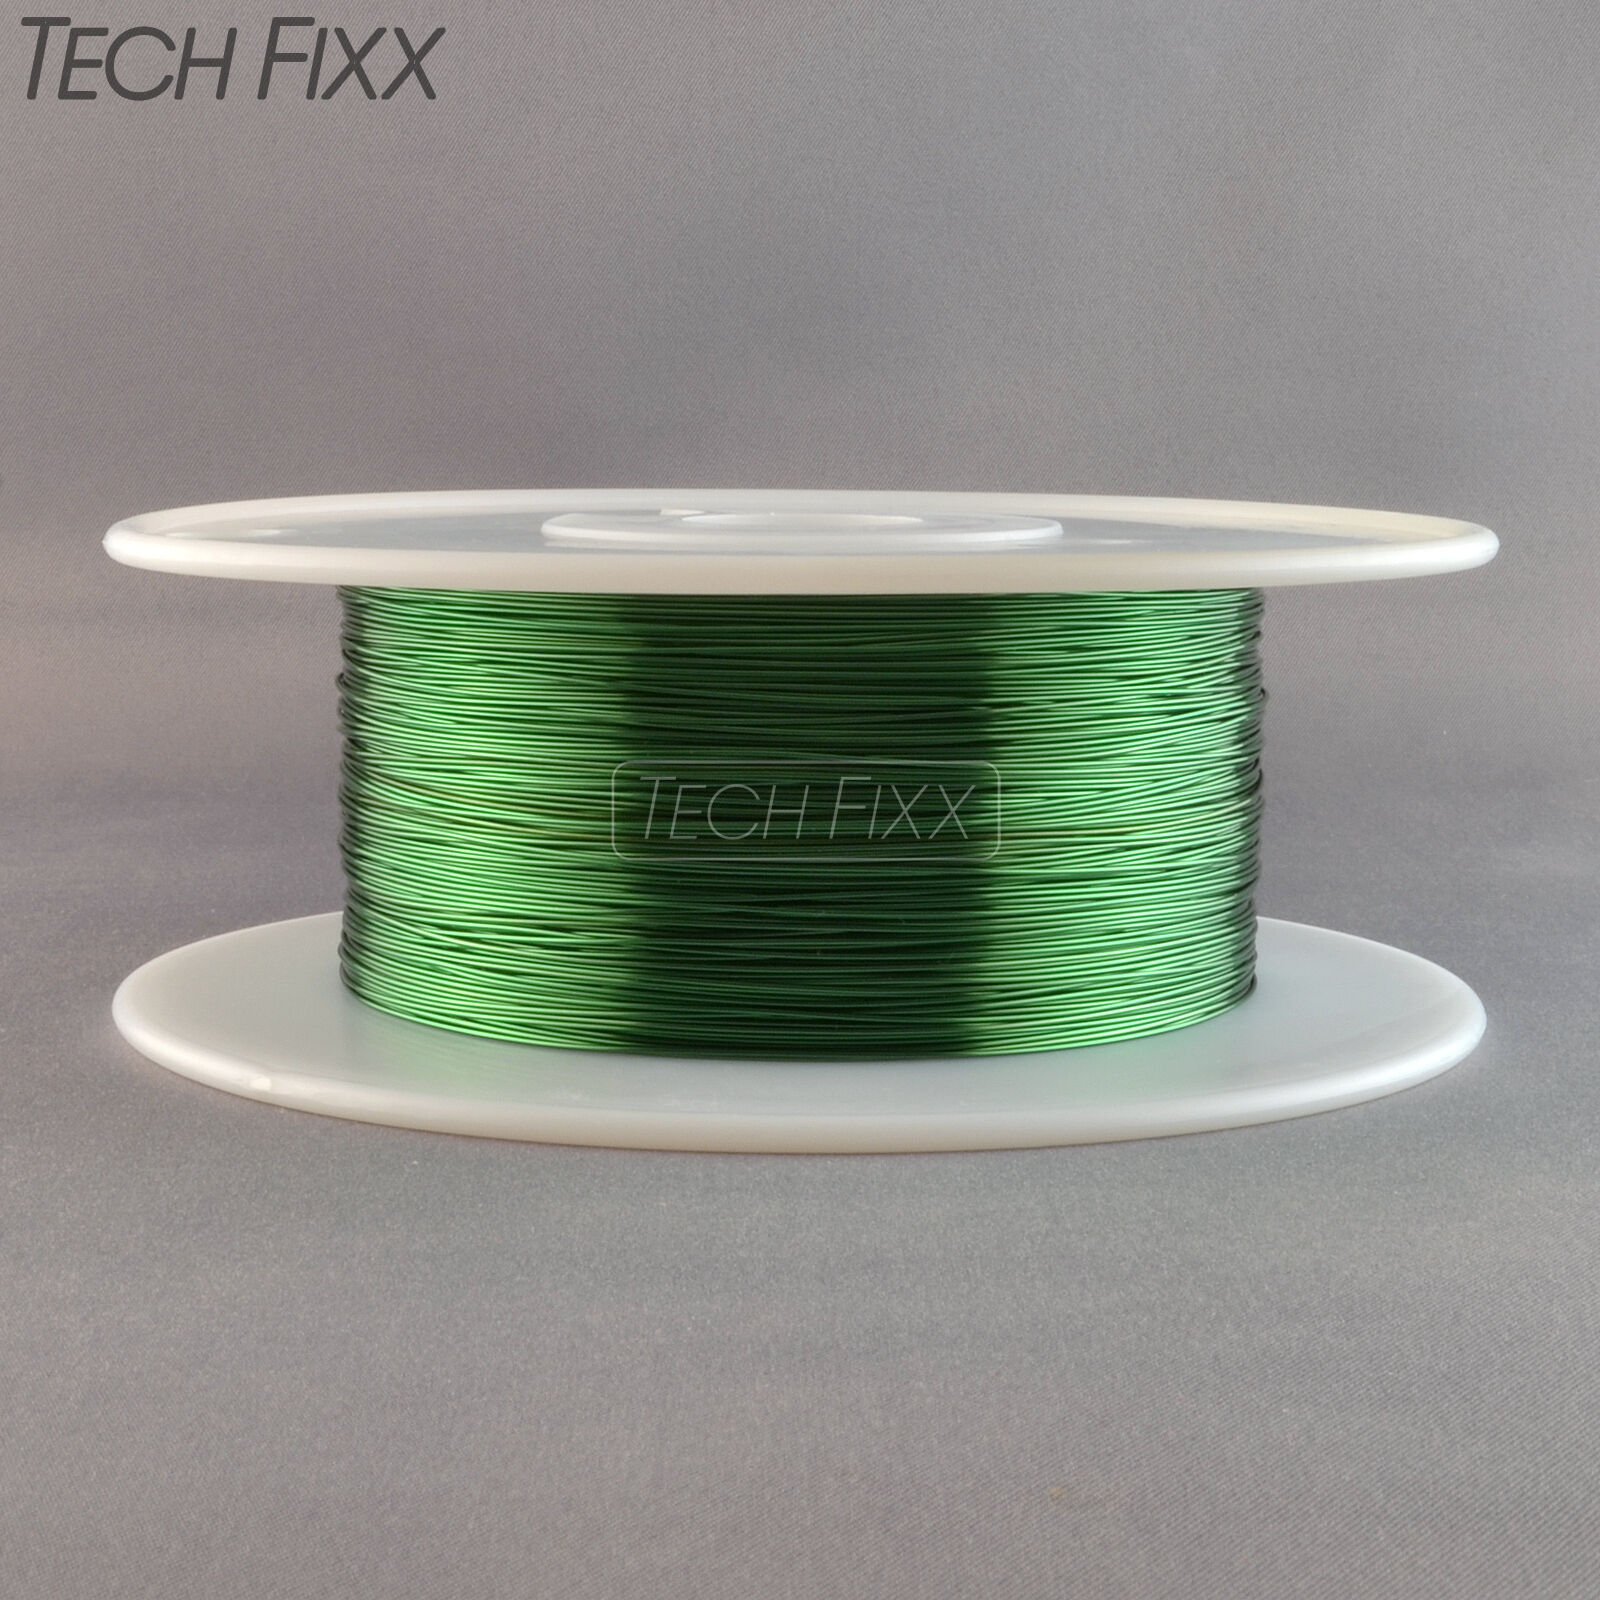 Magnet wire 23 gauge awg enameled copper 1250 feet tattoo coil picture 1 of 1 keyboard keysfo Choice Image